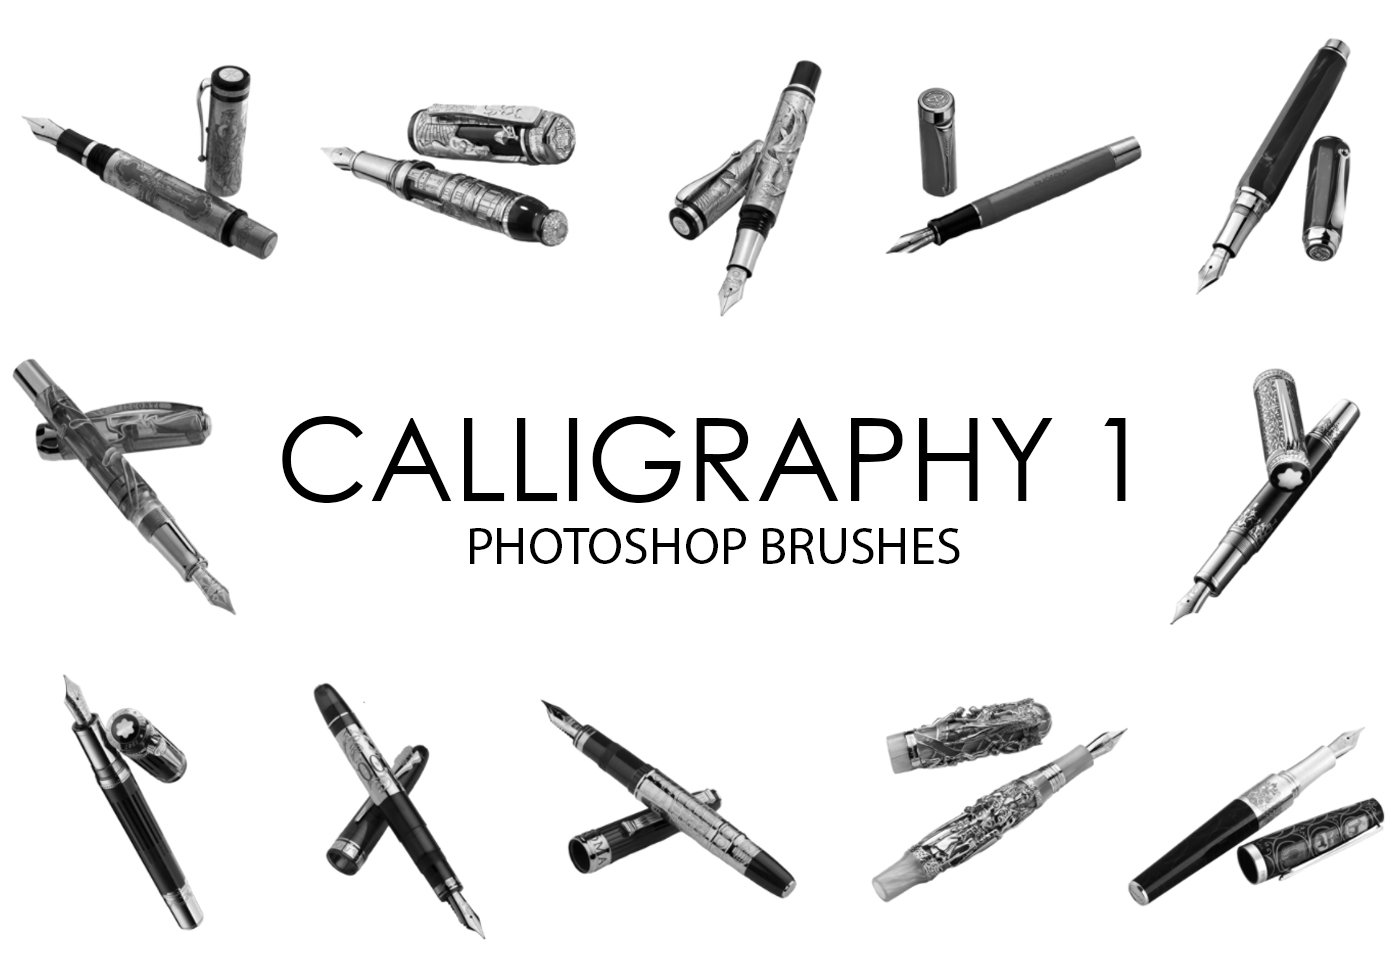 how to use photoshop caligraphy toool